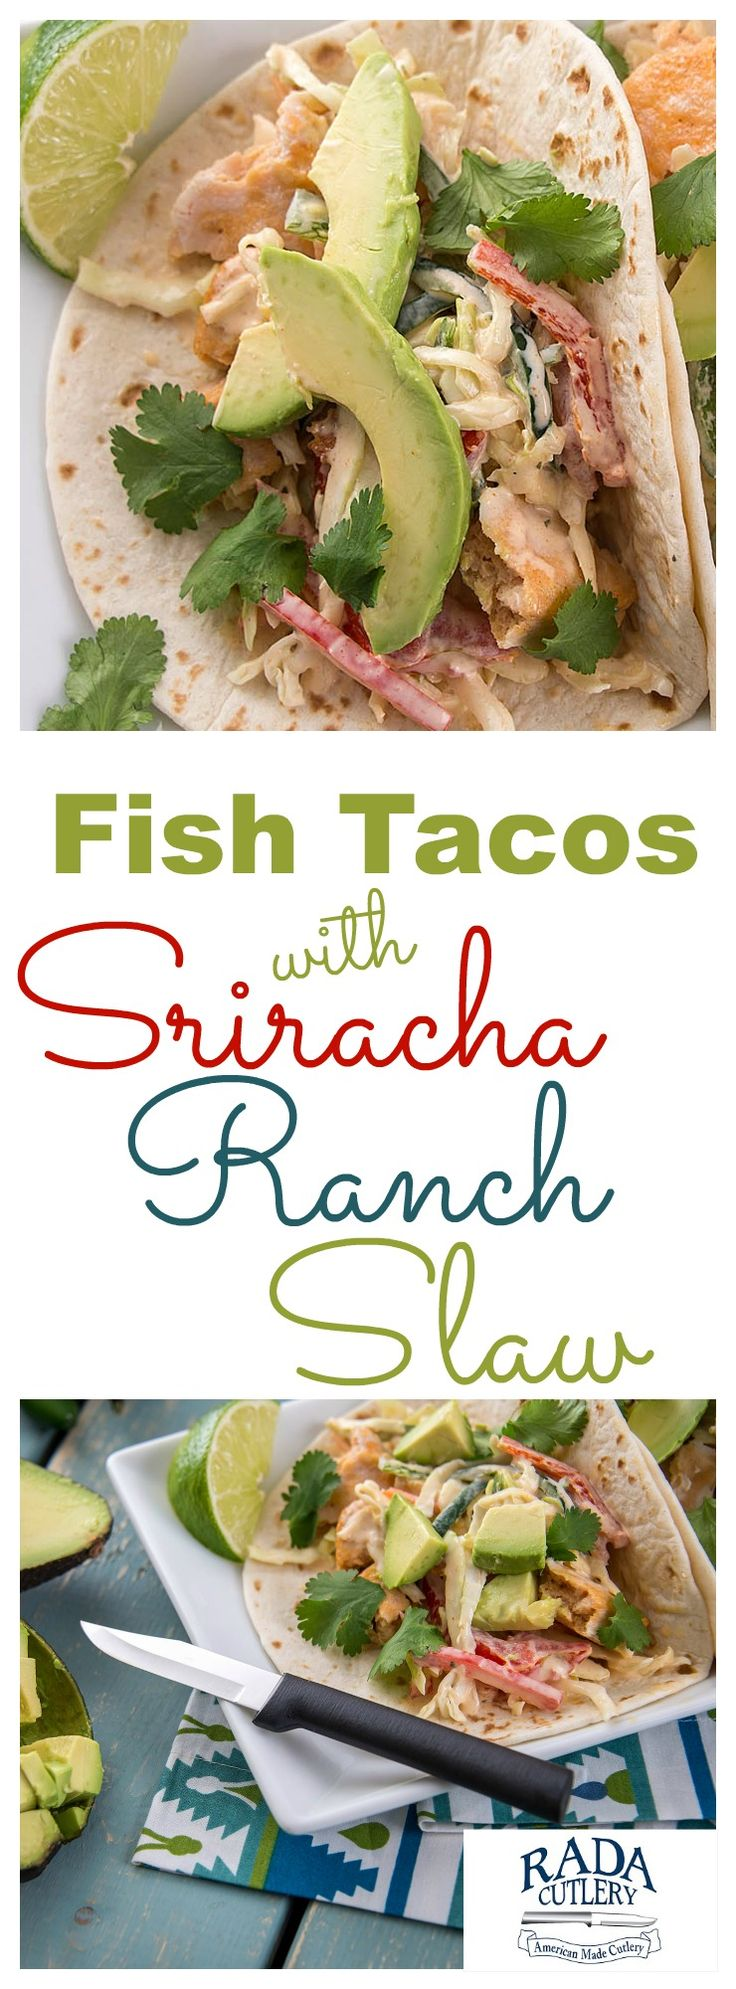 Ever tried an incredible fish taco on a warm day? If not, you're missing out! This just might be the best fish taco recipe in the world. It's seafood heaven, with a tangy sriracha slaw that takes it out of this world! #fish #taco #avocodo